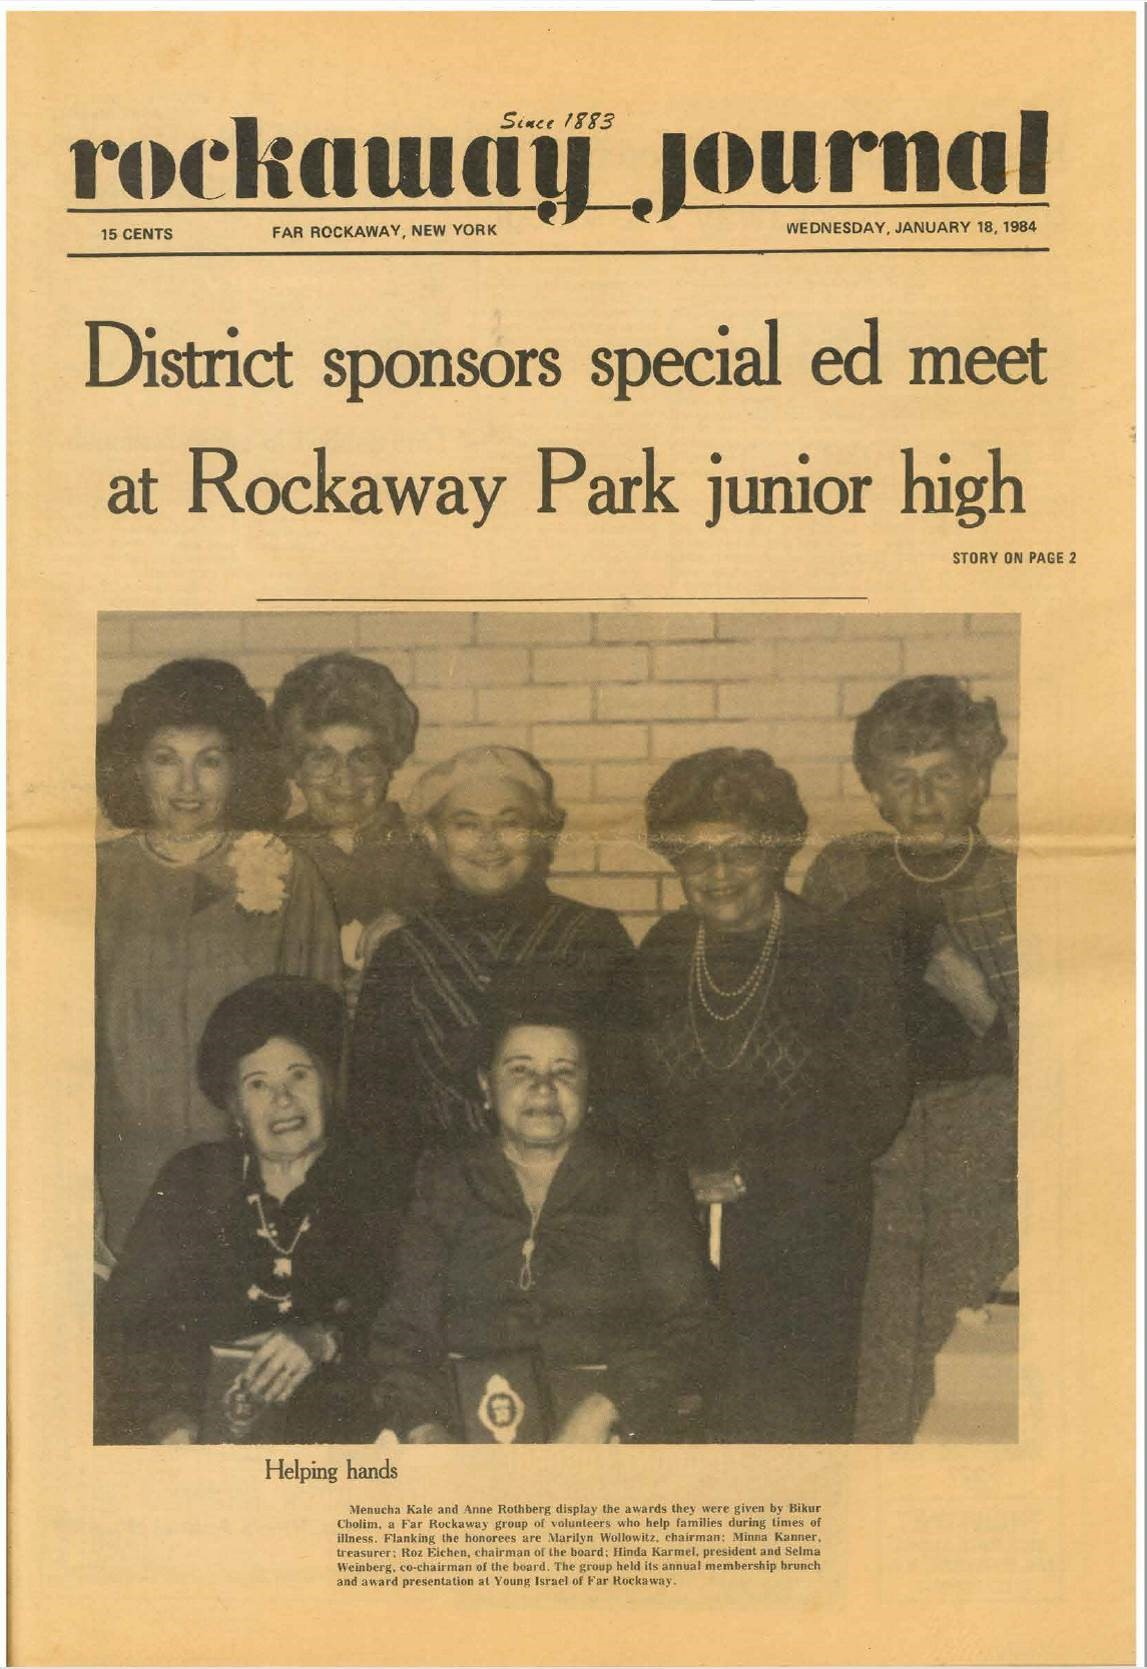 newspaper cutting from rockway journal